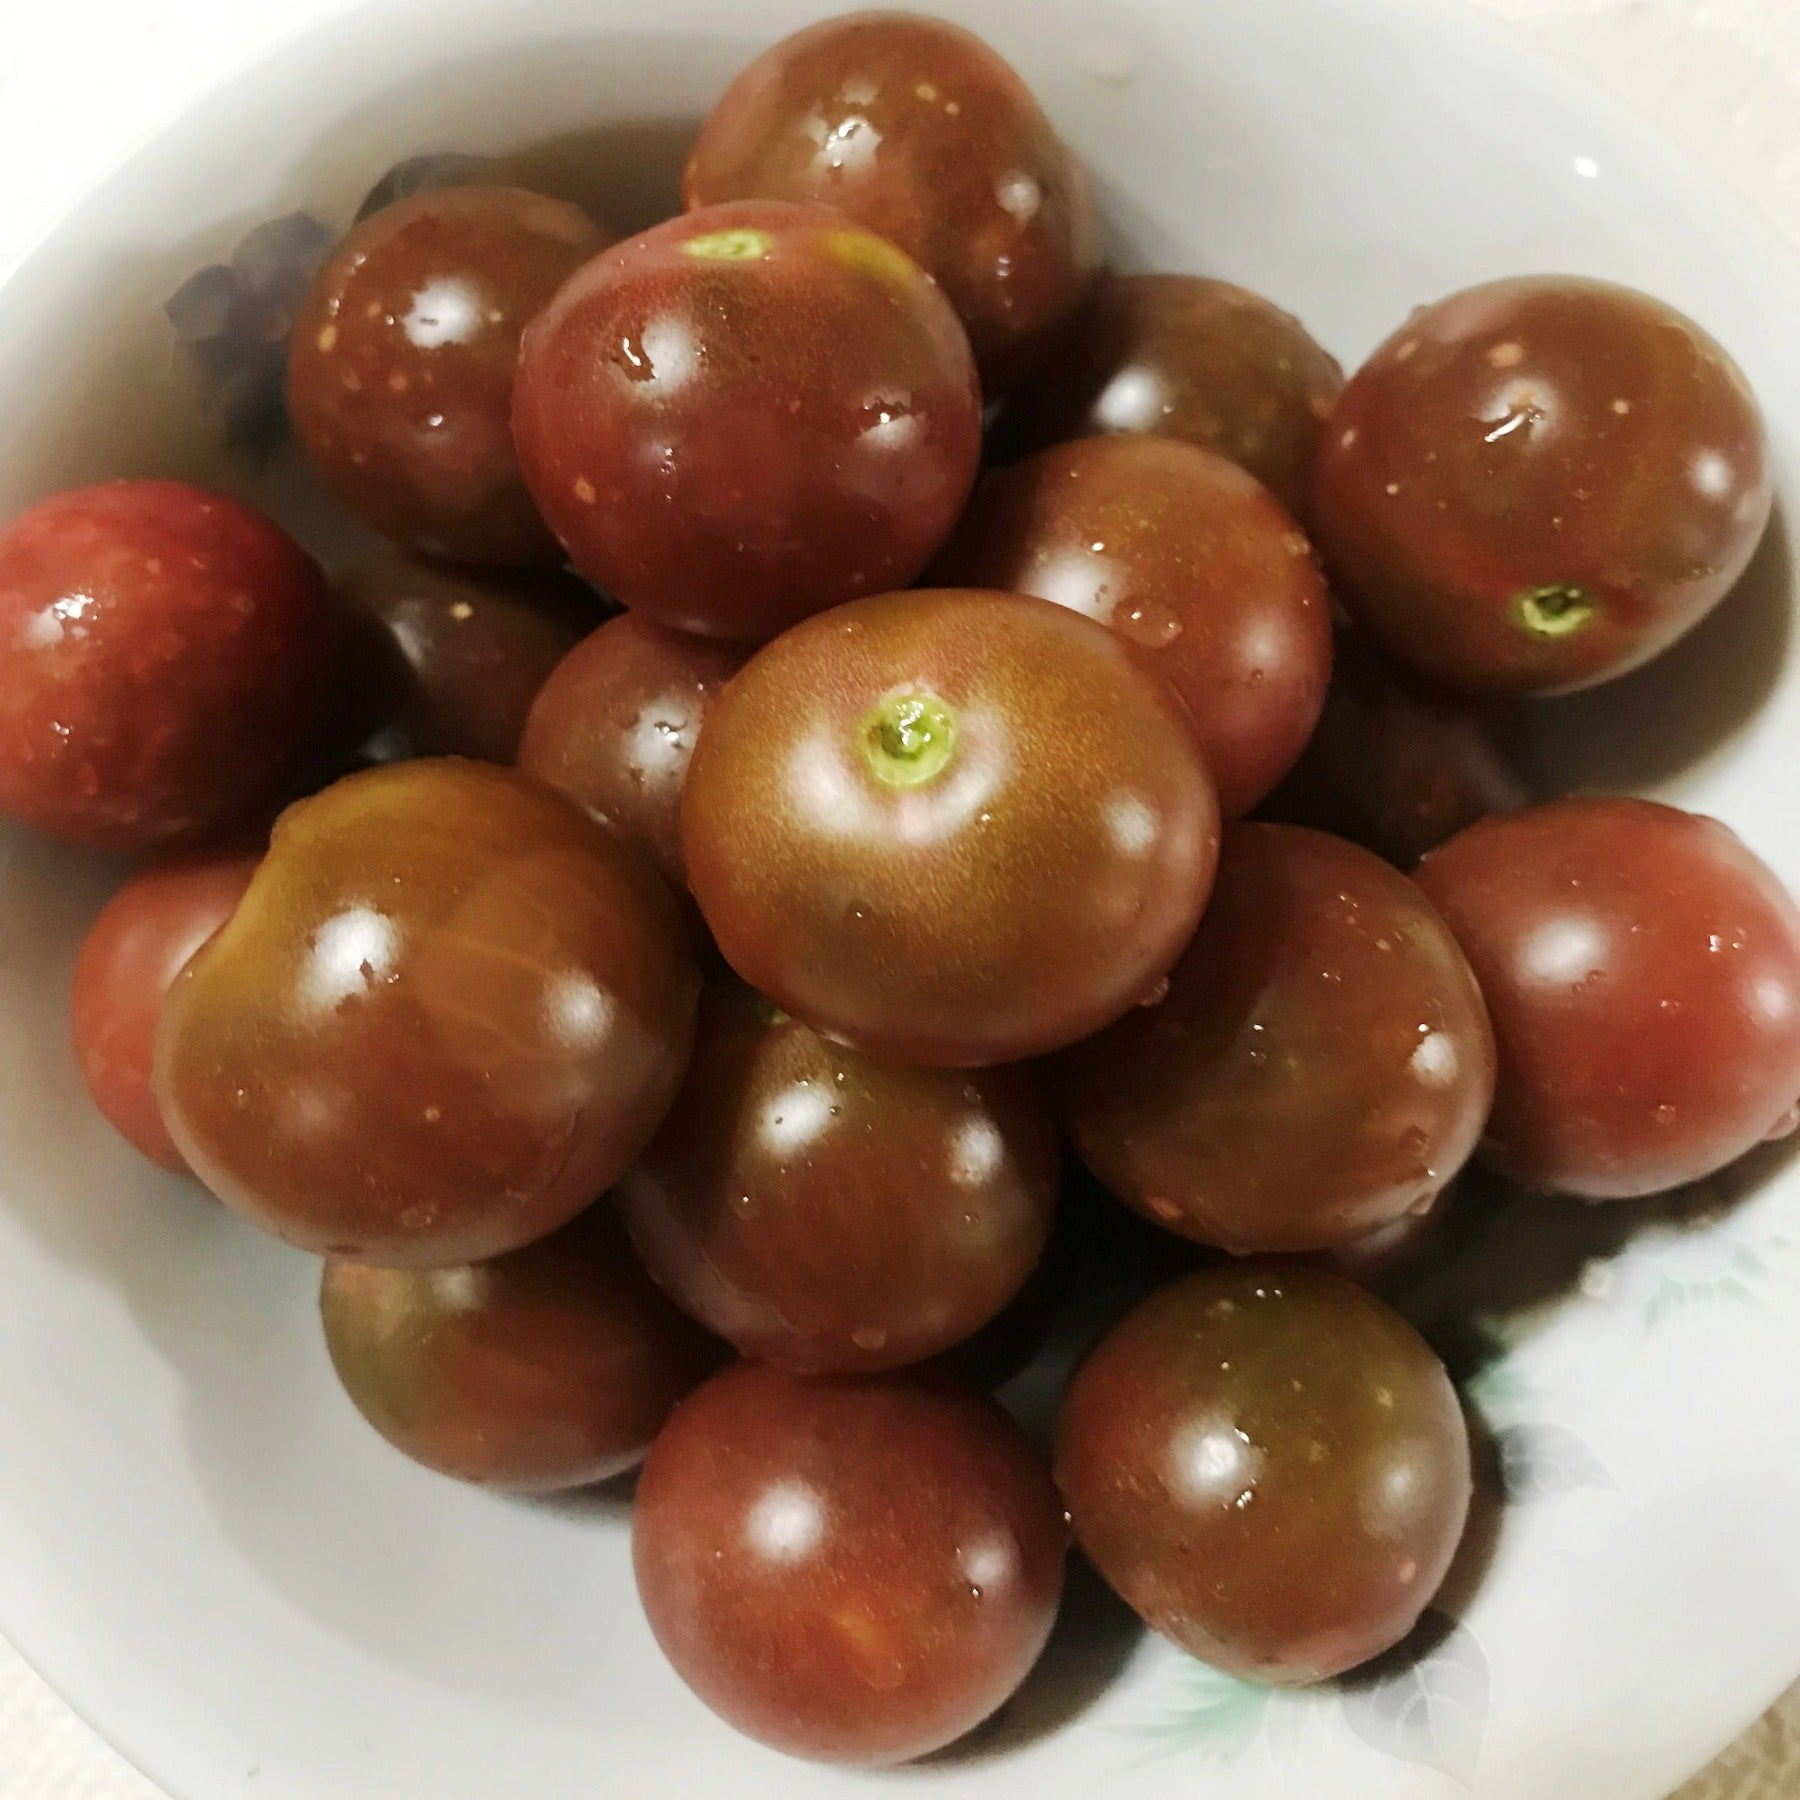 Kevin's Large Black Cherry Tomato Seeds